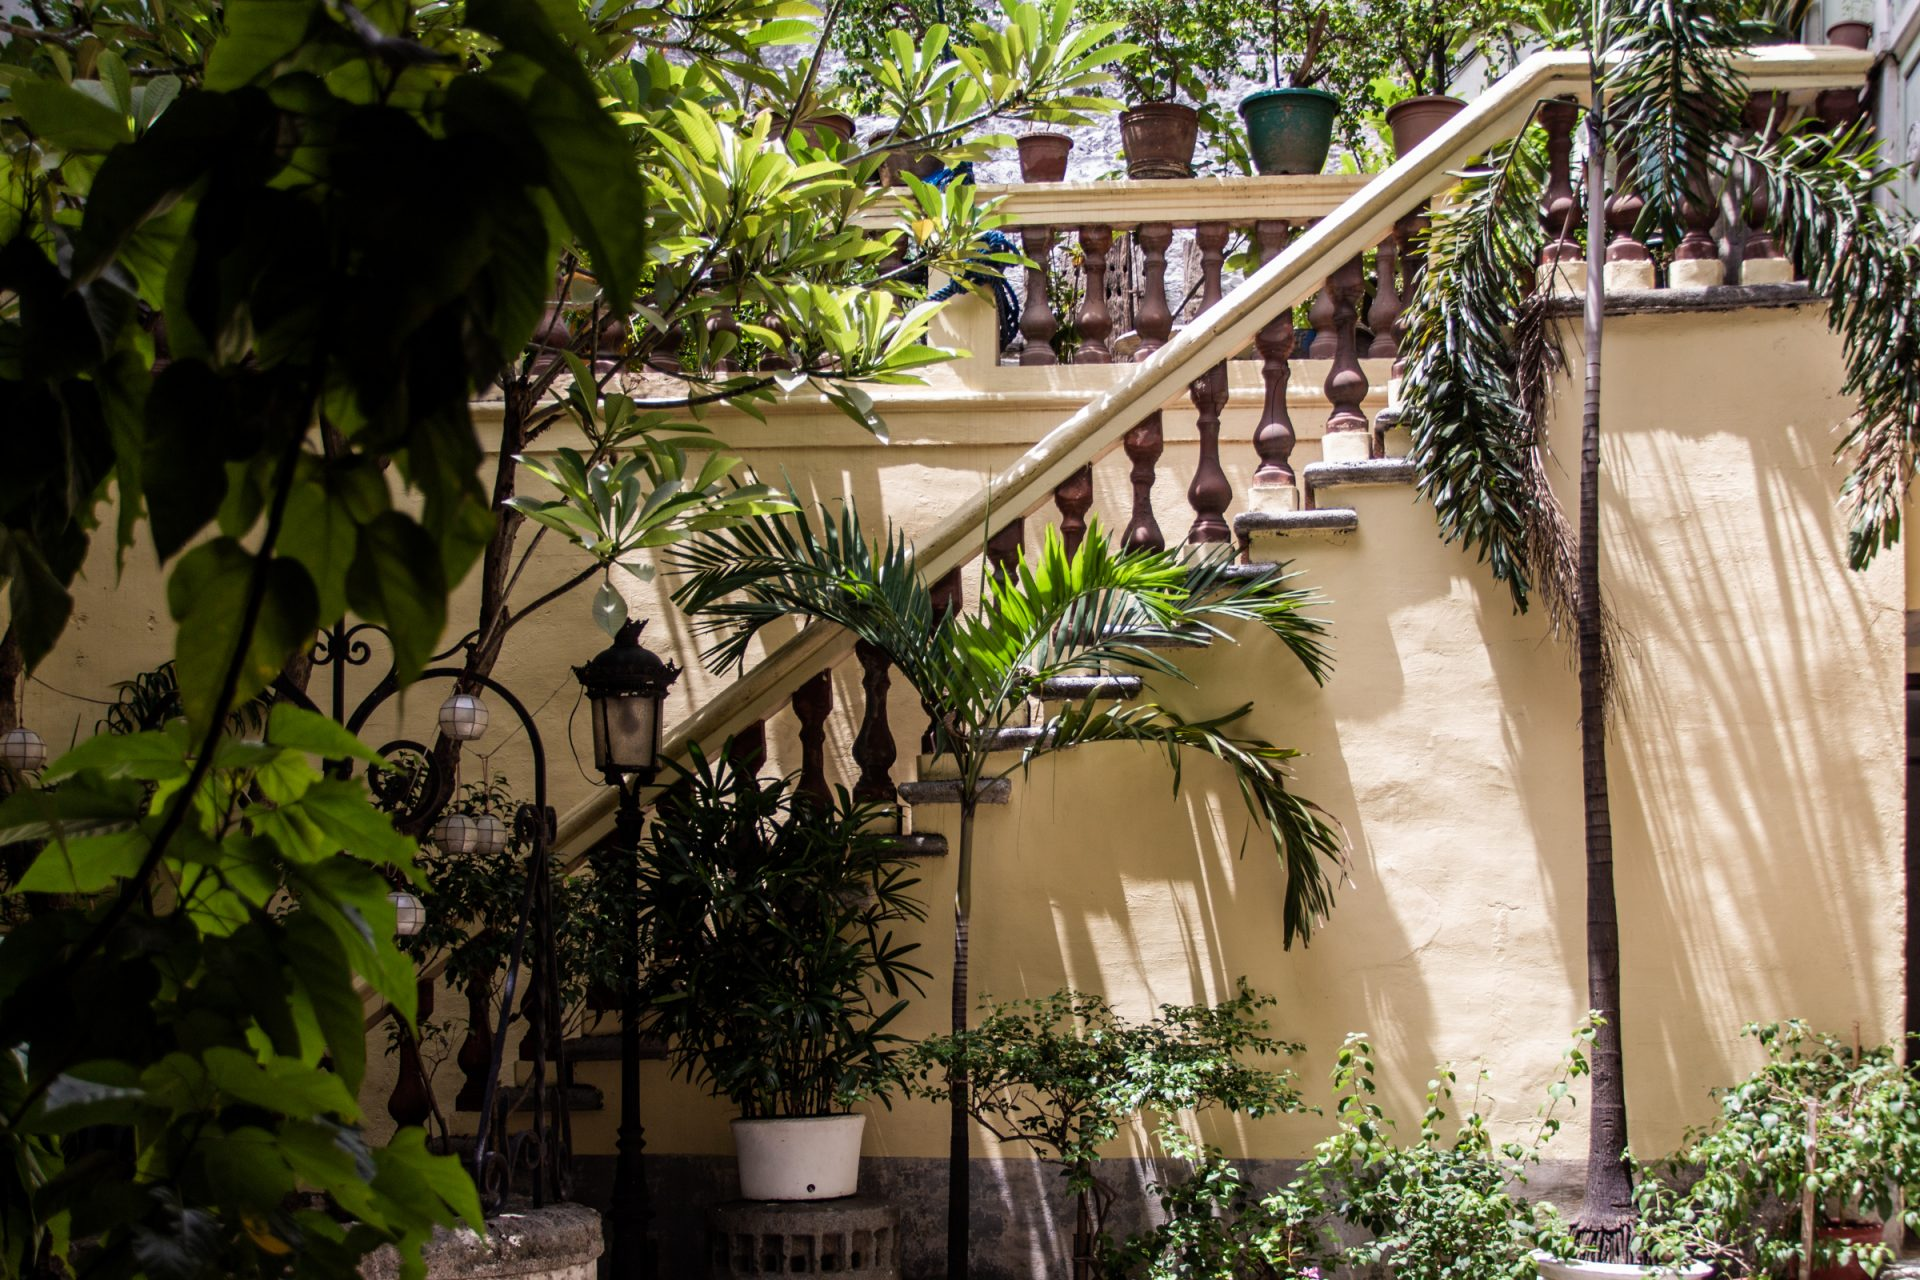 Staircase With Banister Surrounded By Plants